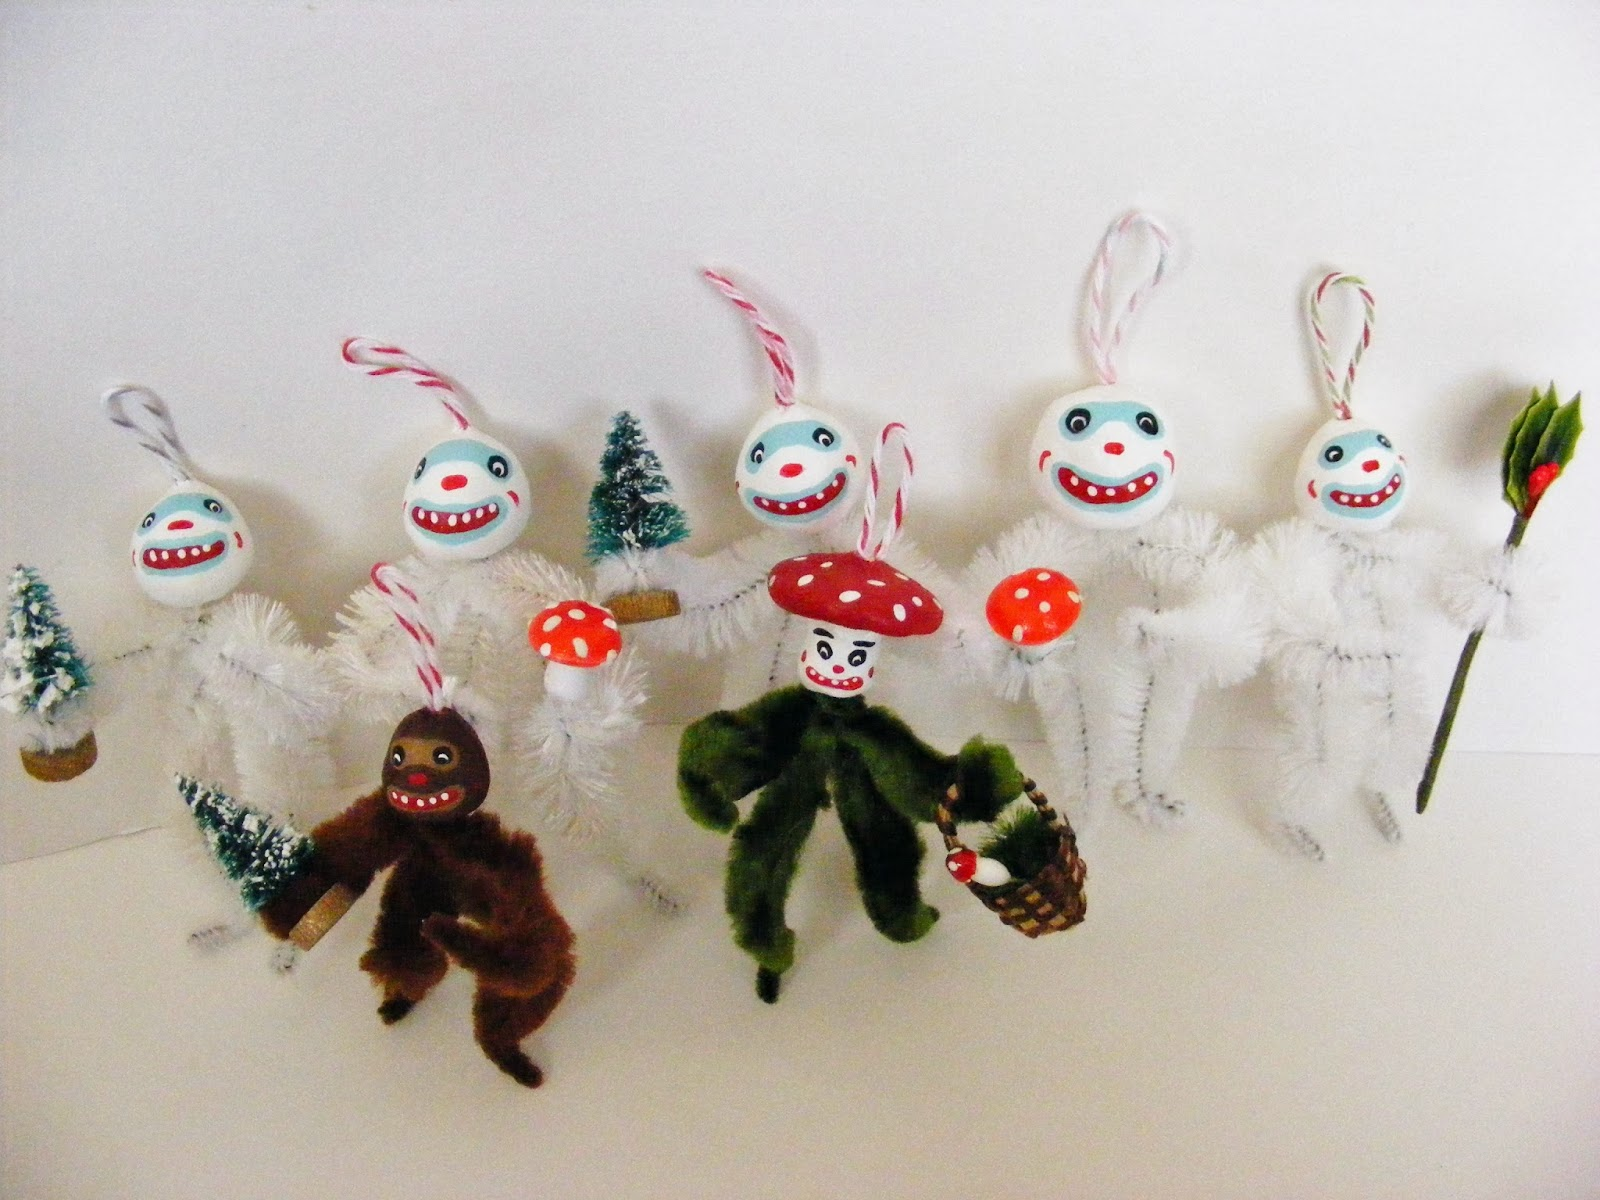 MAGIKAL SEASONS: Krampus and Chenille Ornaments